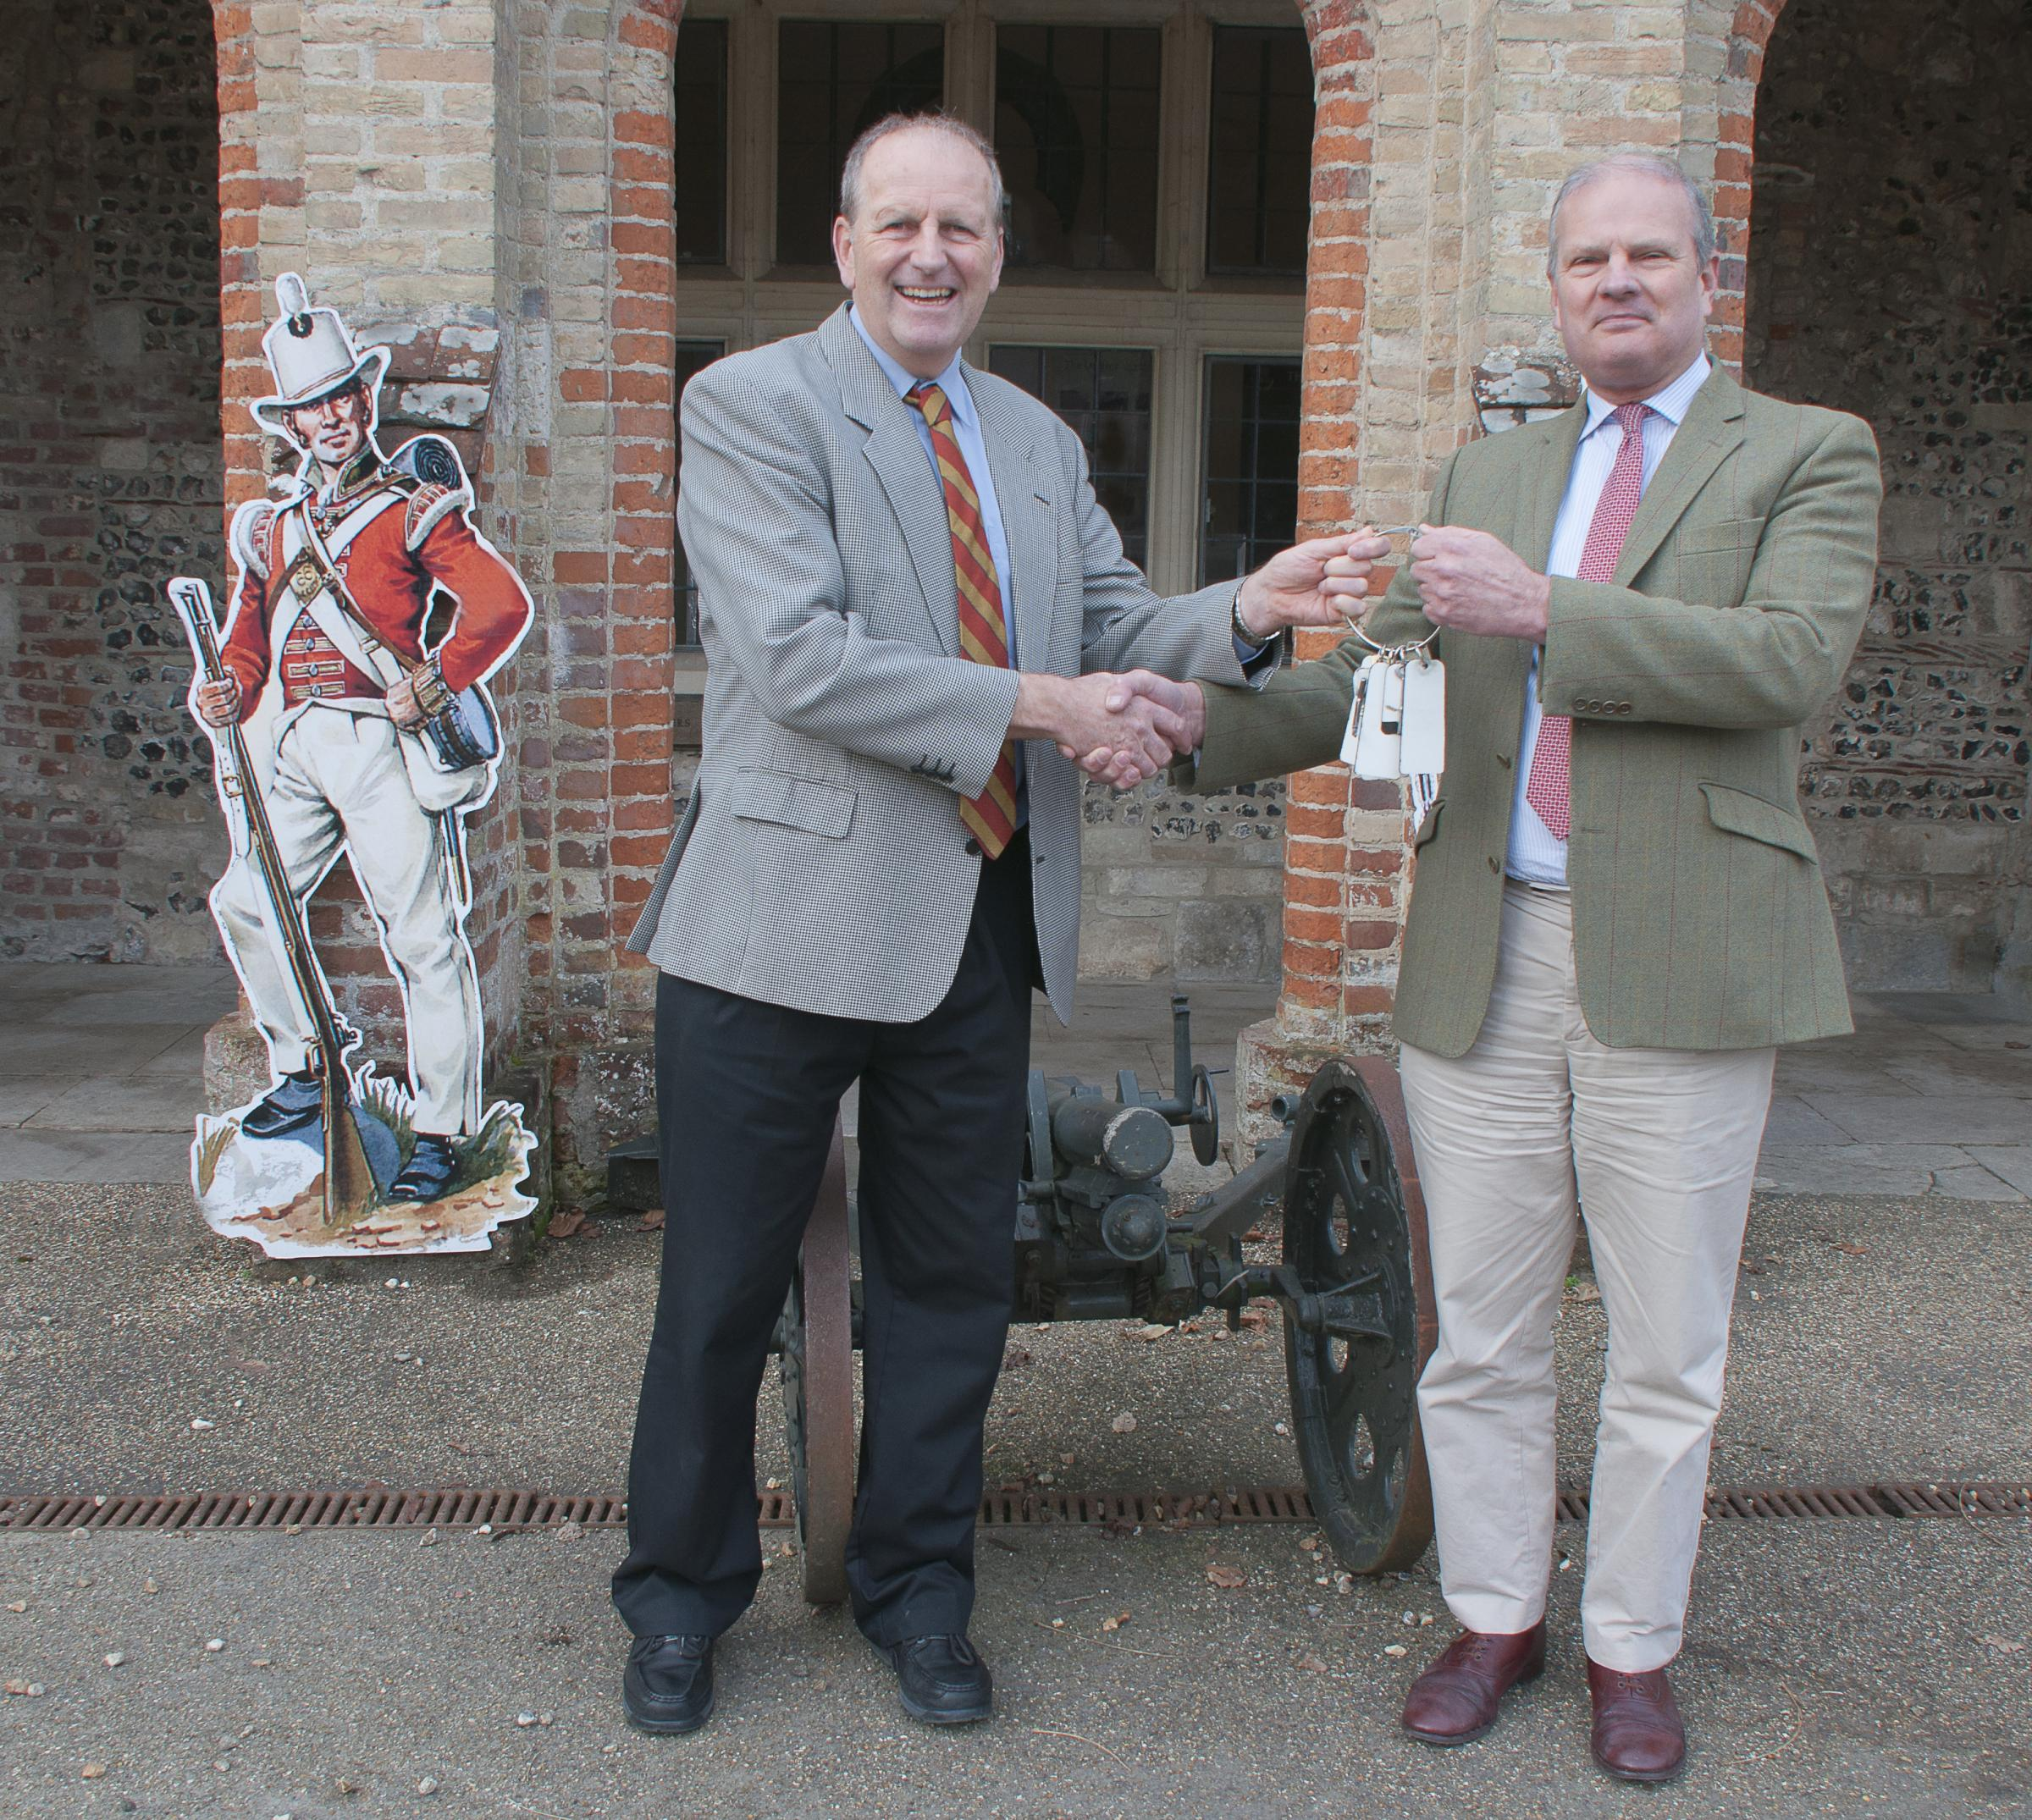 Ceremony of the Keys - Simon Cook (left) is seen handing the keys over to Tony Field